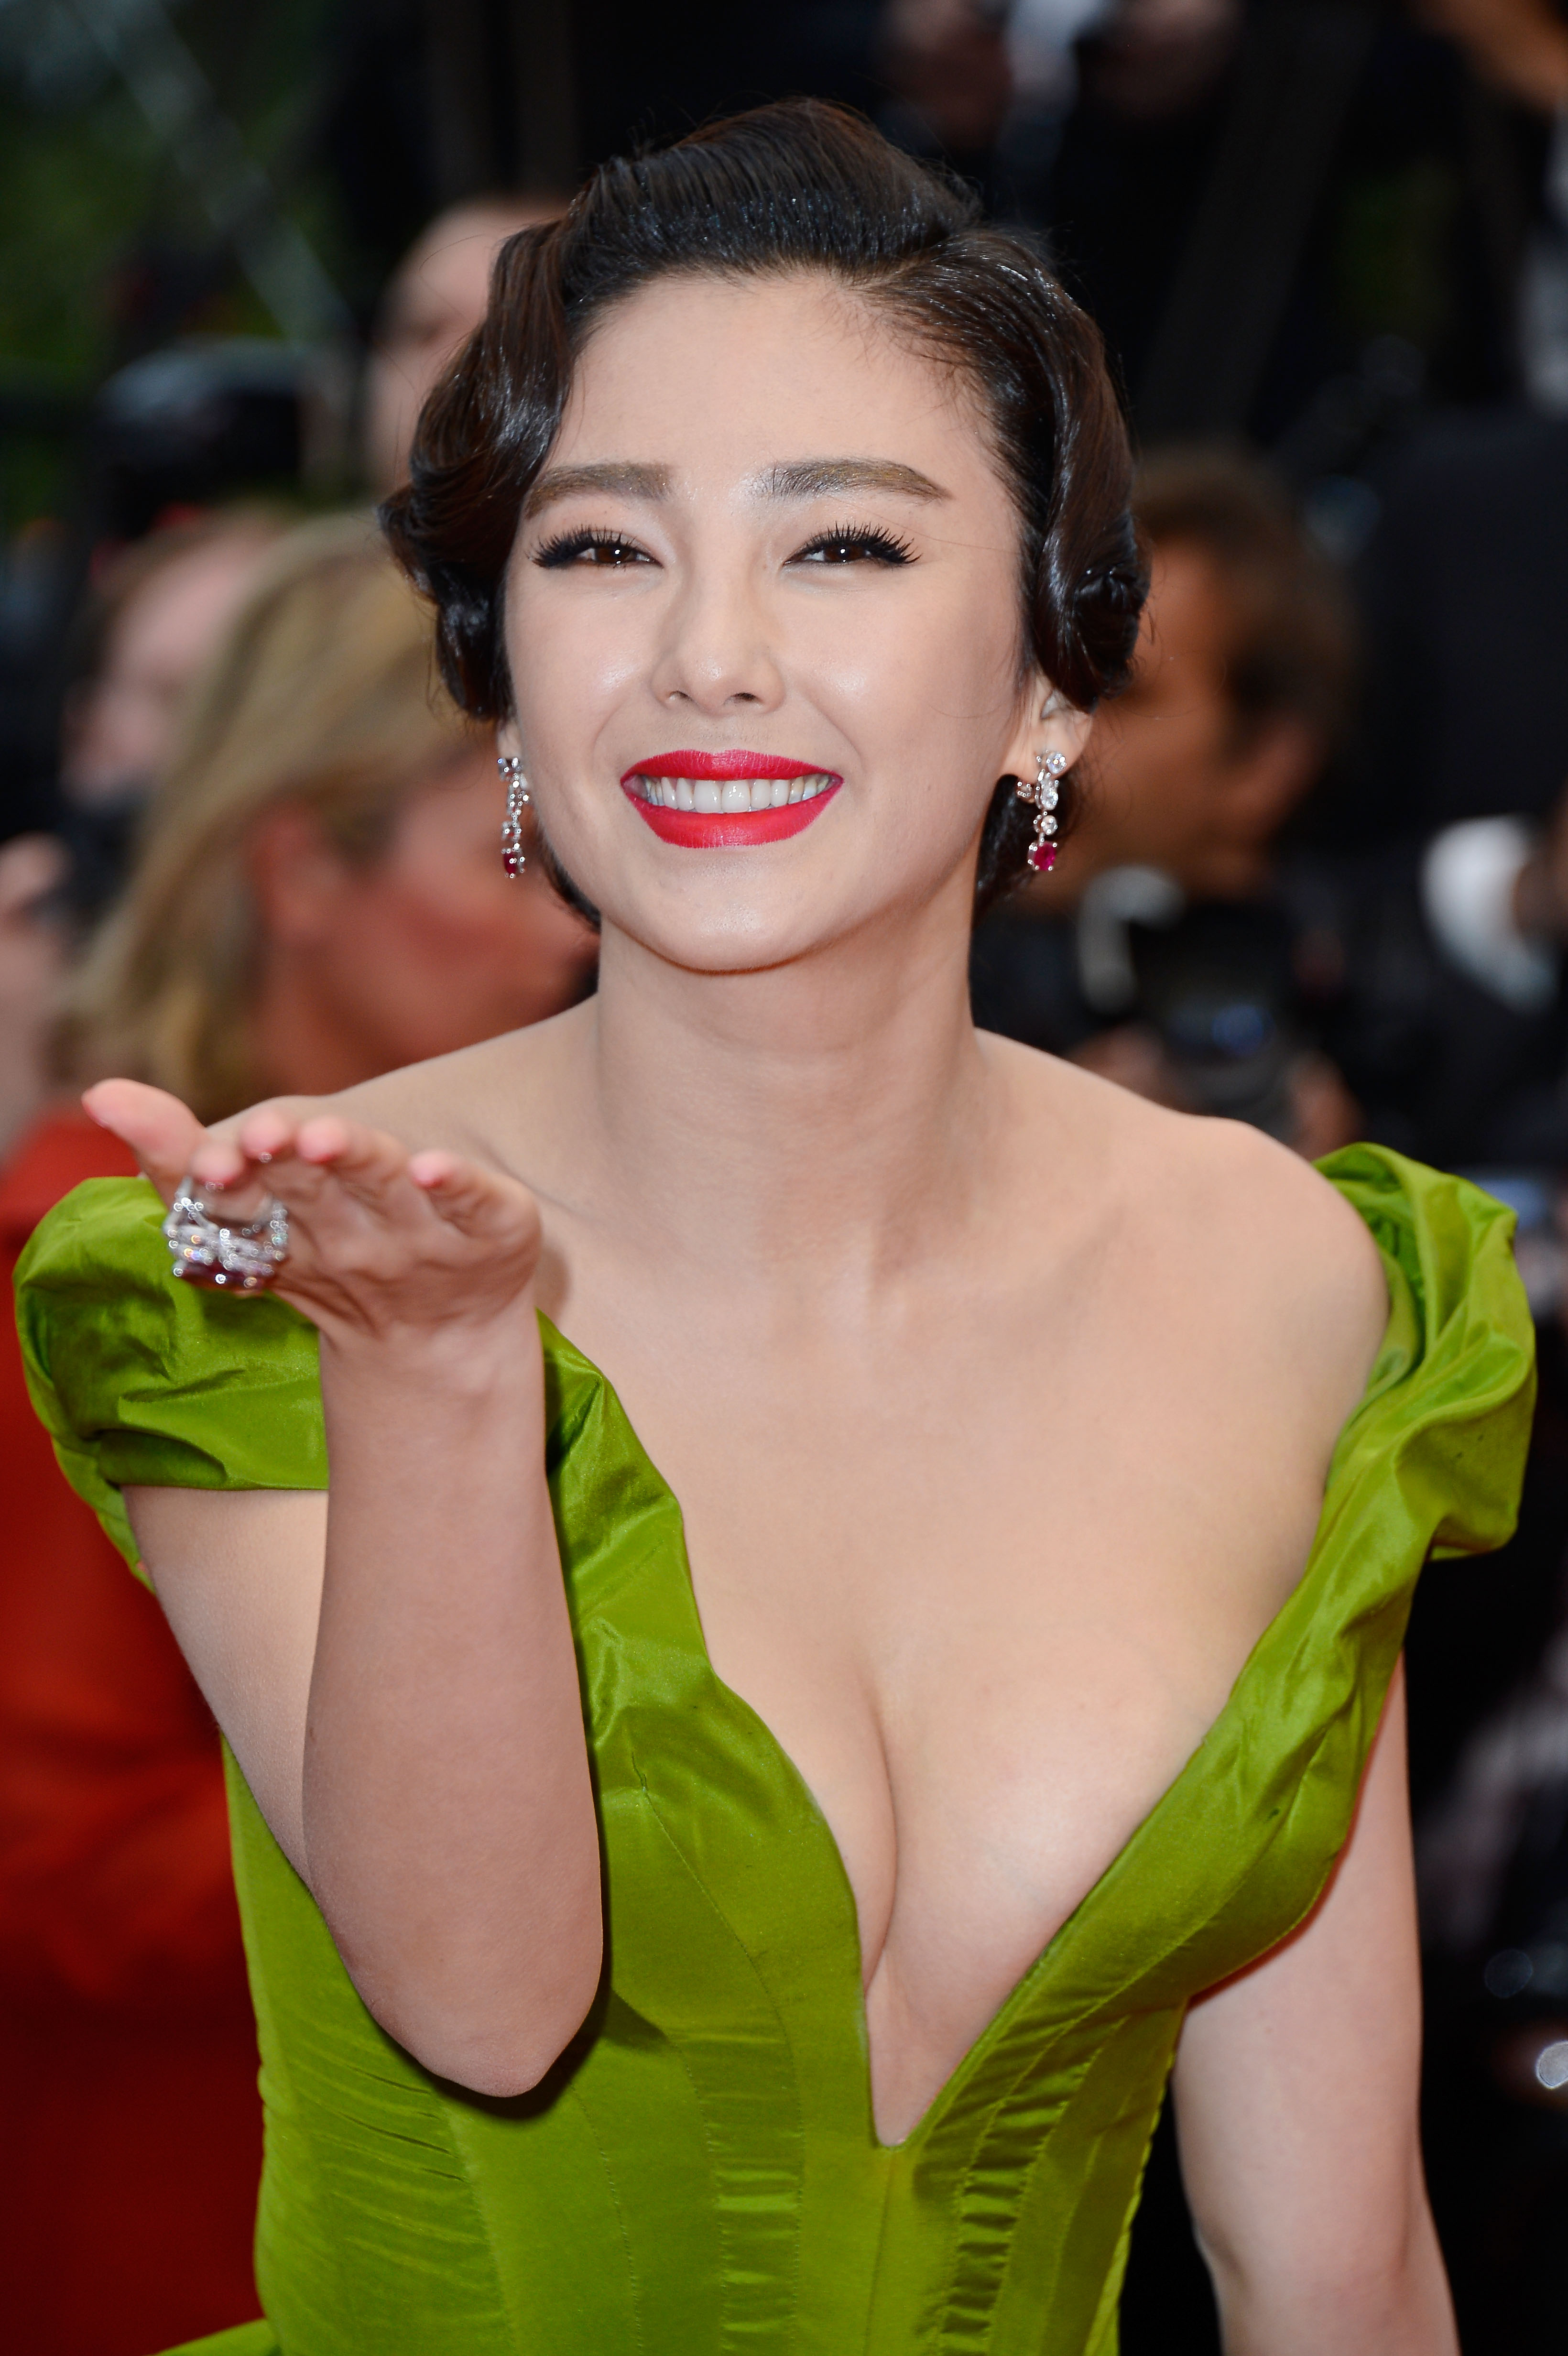 Zhang-Yuqi-Premiere-The-Great-Gatsby-66th-Cannes-Film-Festival-7